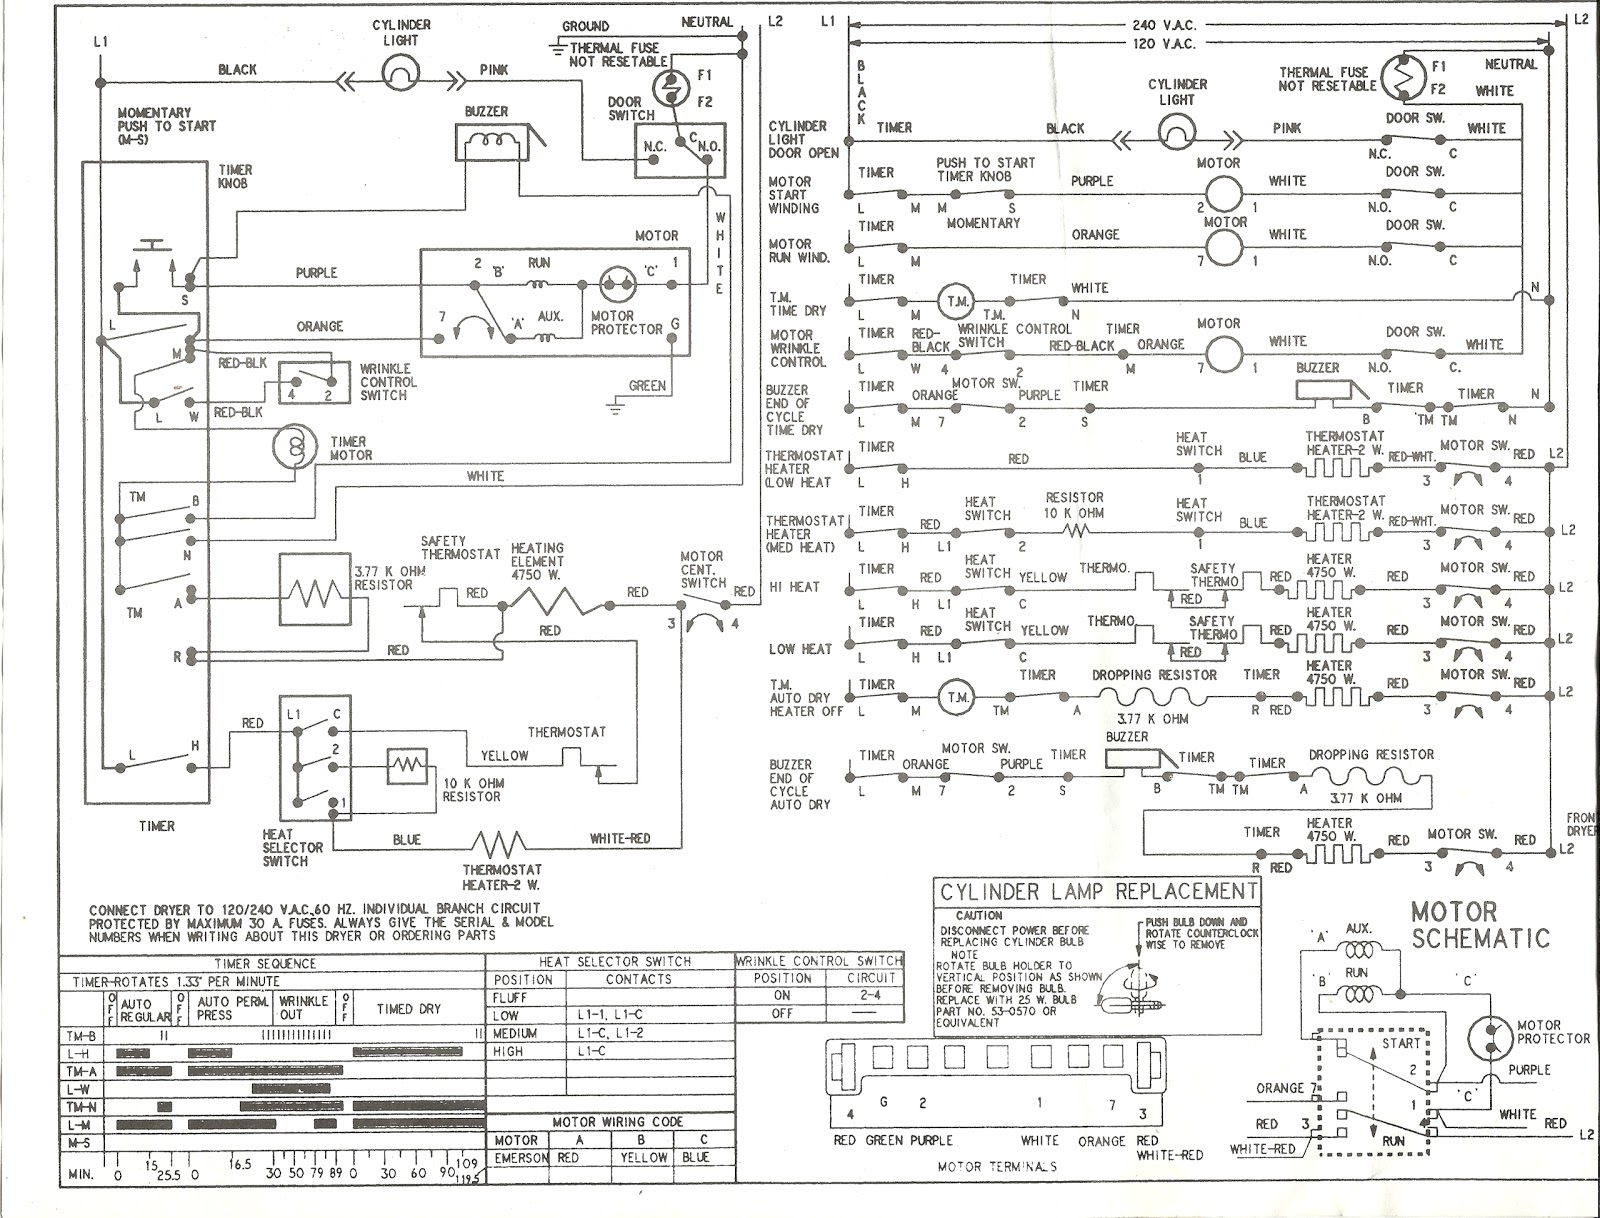 kenmore washer wiring diagram on wiring diagram parts wiring for kenmore 80 series washer parts diagram wiring diagram for whirlpool washer on wiring download wirning  at creativeand.co